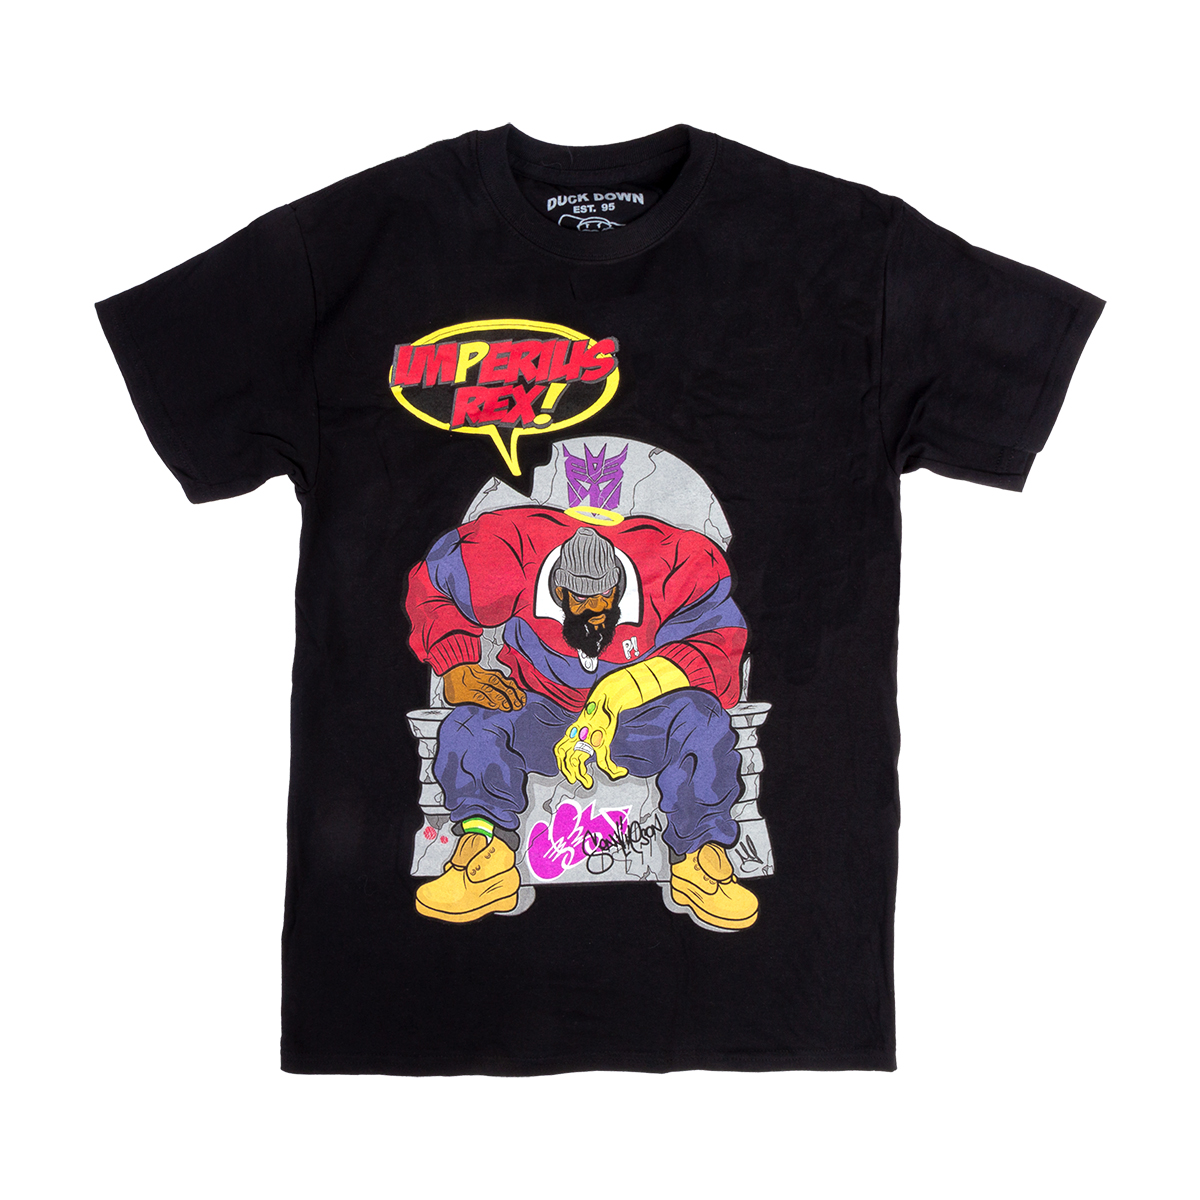 Sean Price - Imperius Rex T-Shirt [Black]